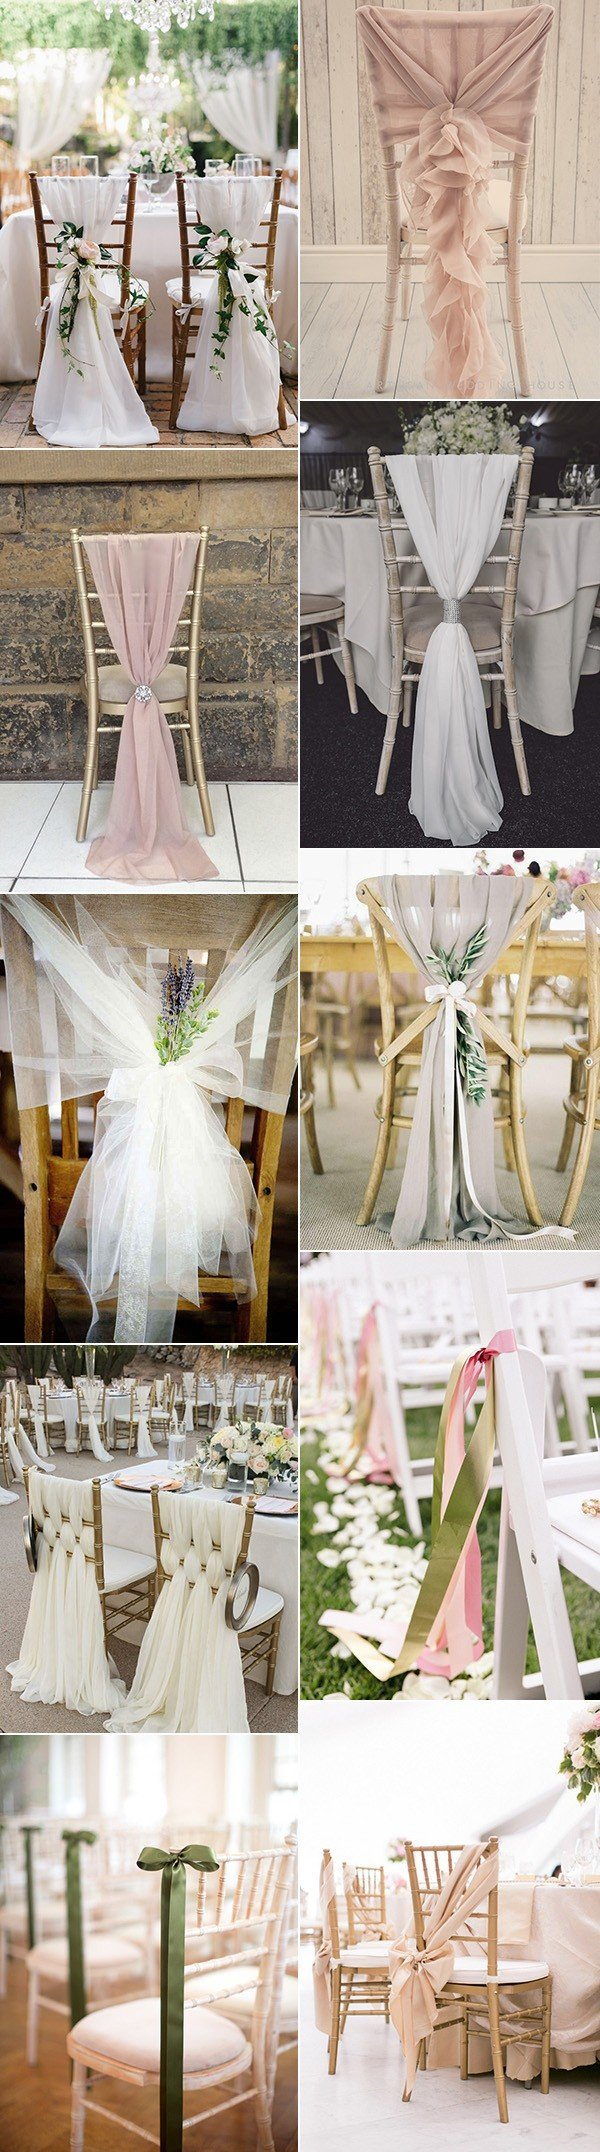 best fabrics for chairs luraco massage chair 28 awesome wedding decoration ideas ceremony and reception - oh day ever